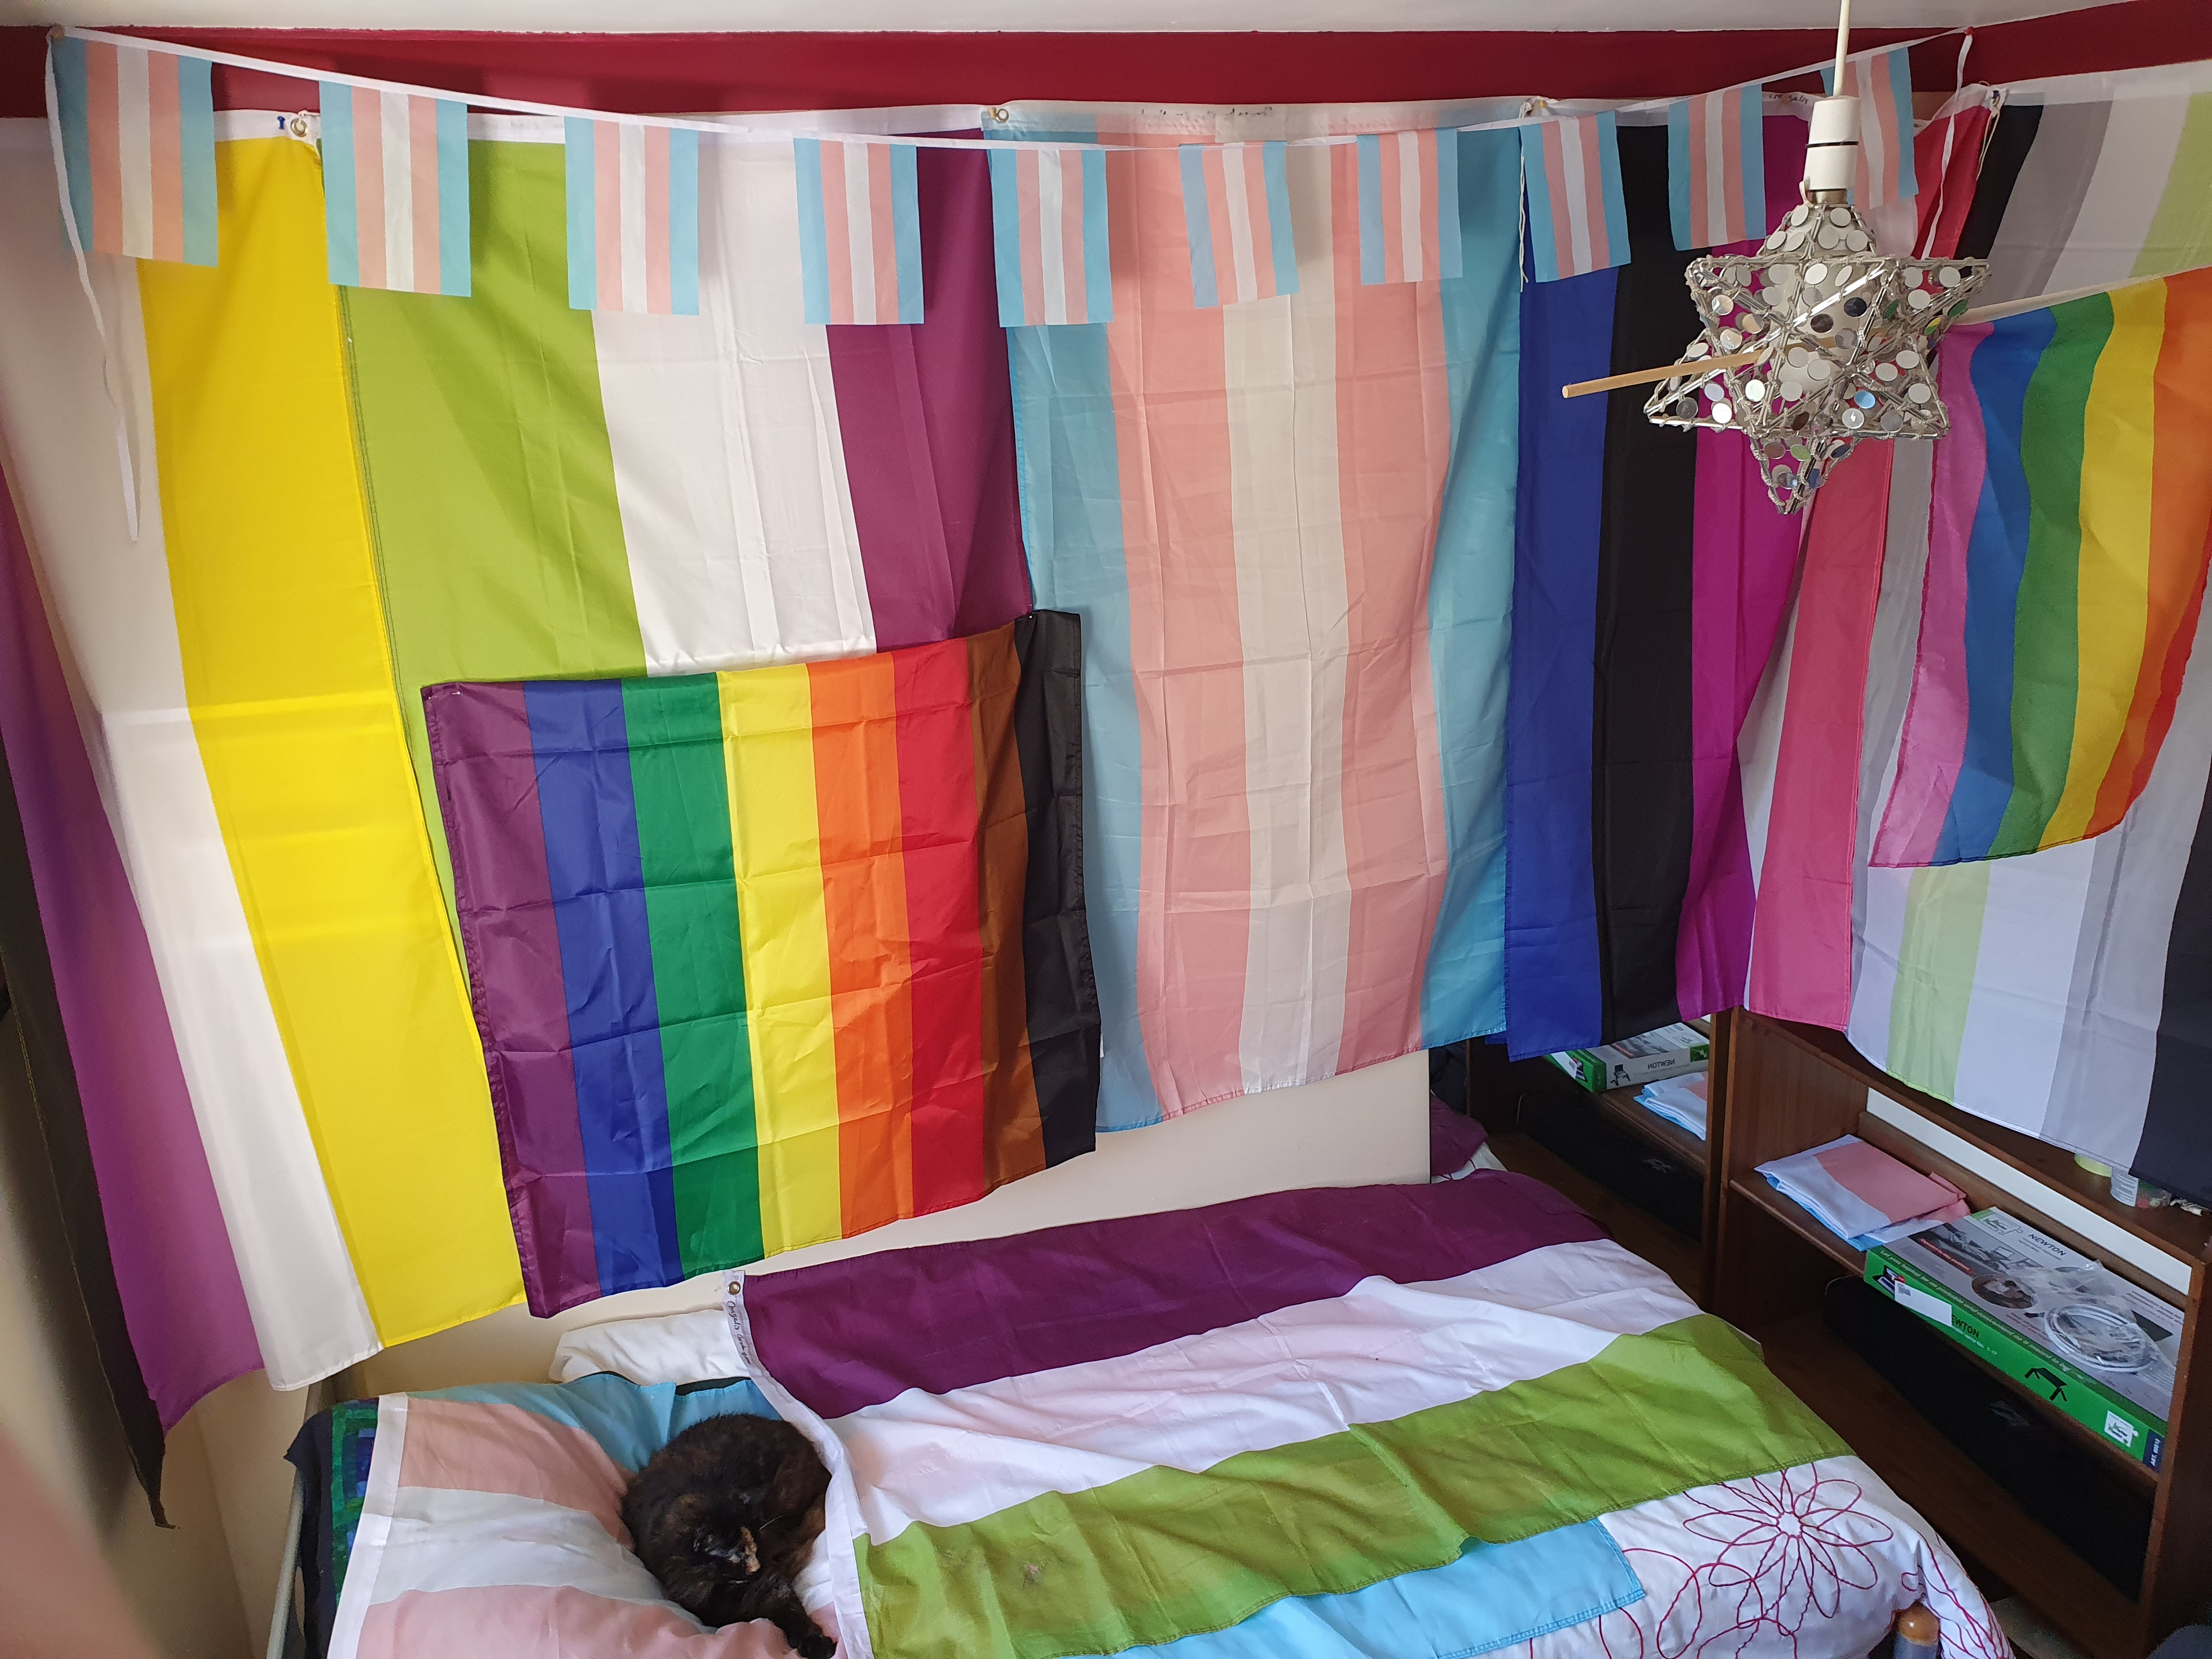 Tran and enby flags hanging on a wall, cat on bed